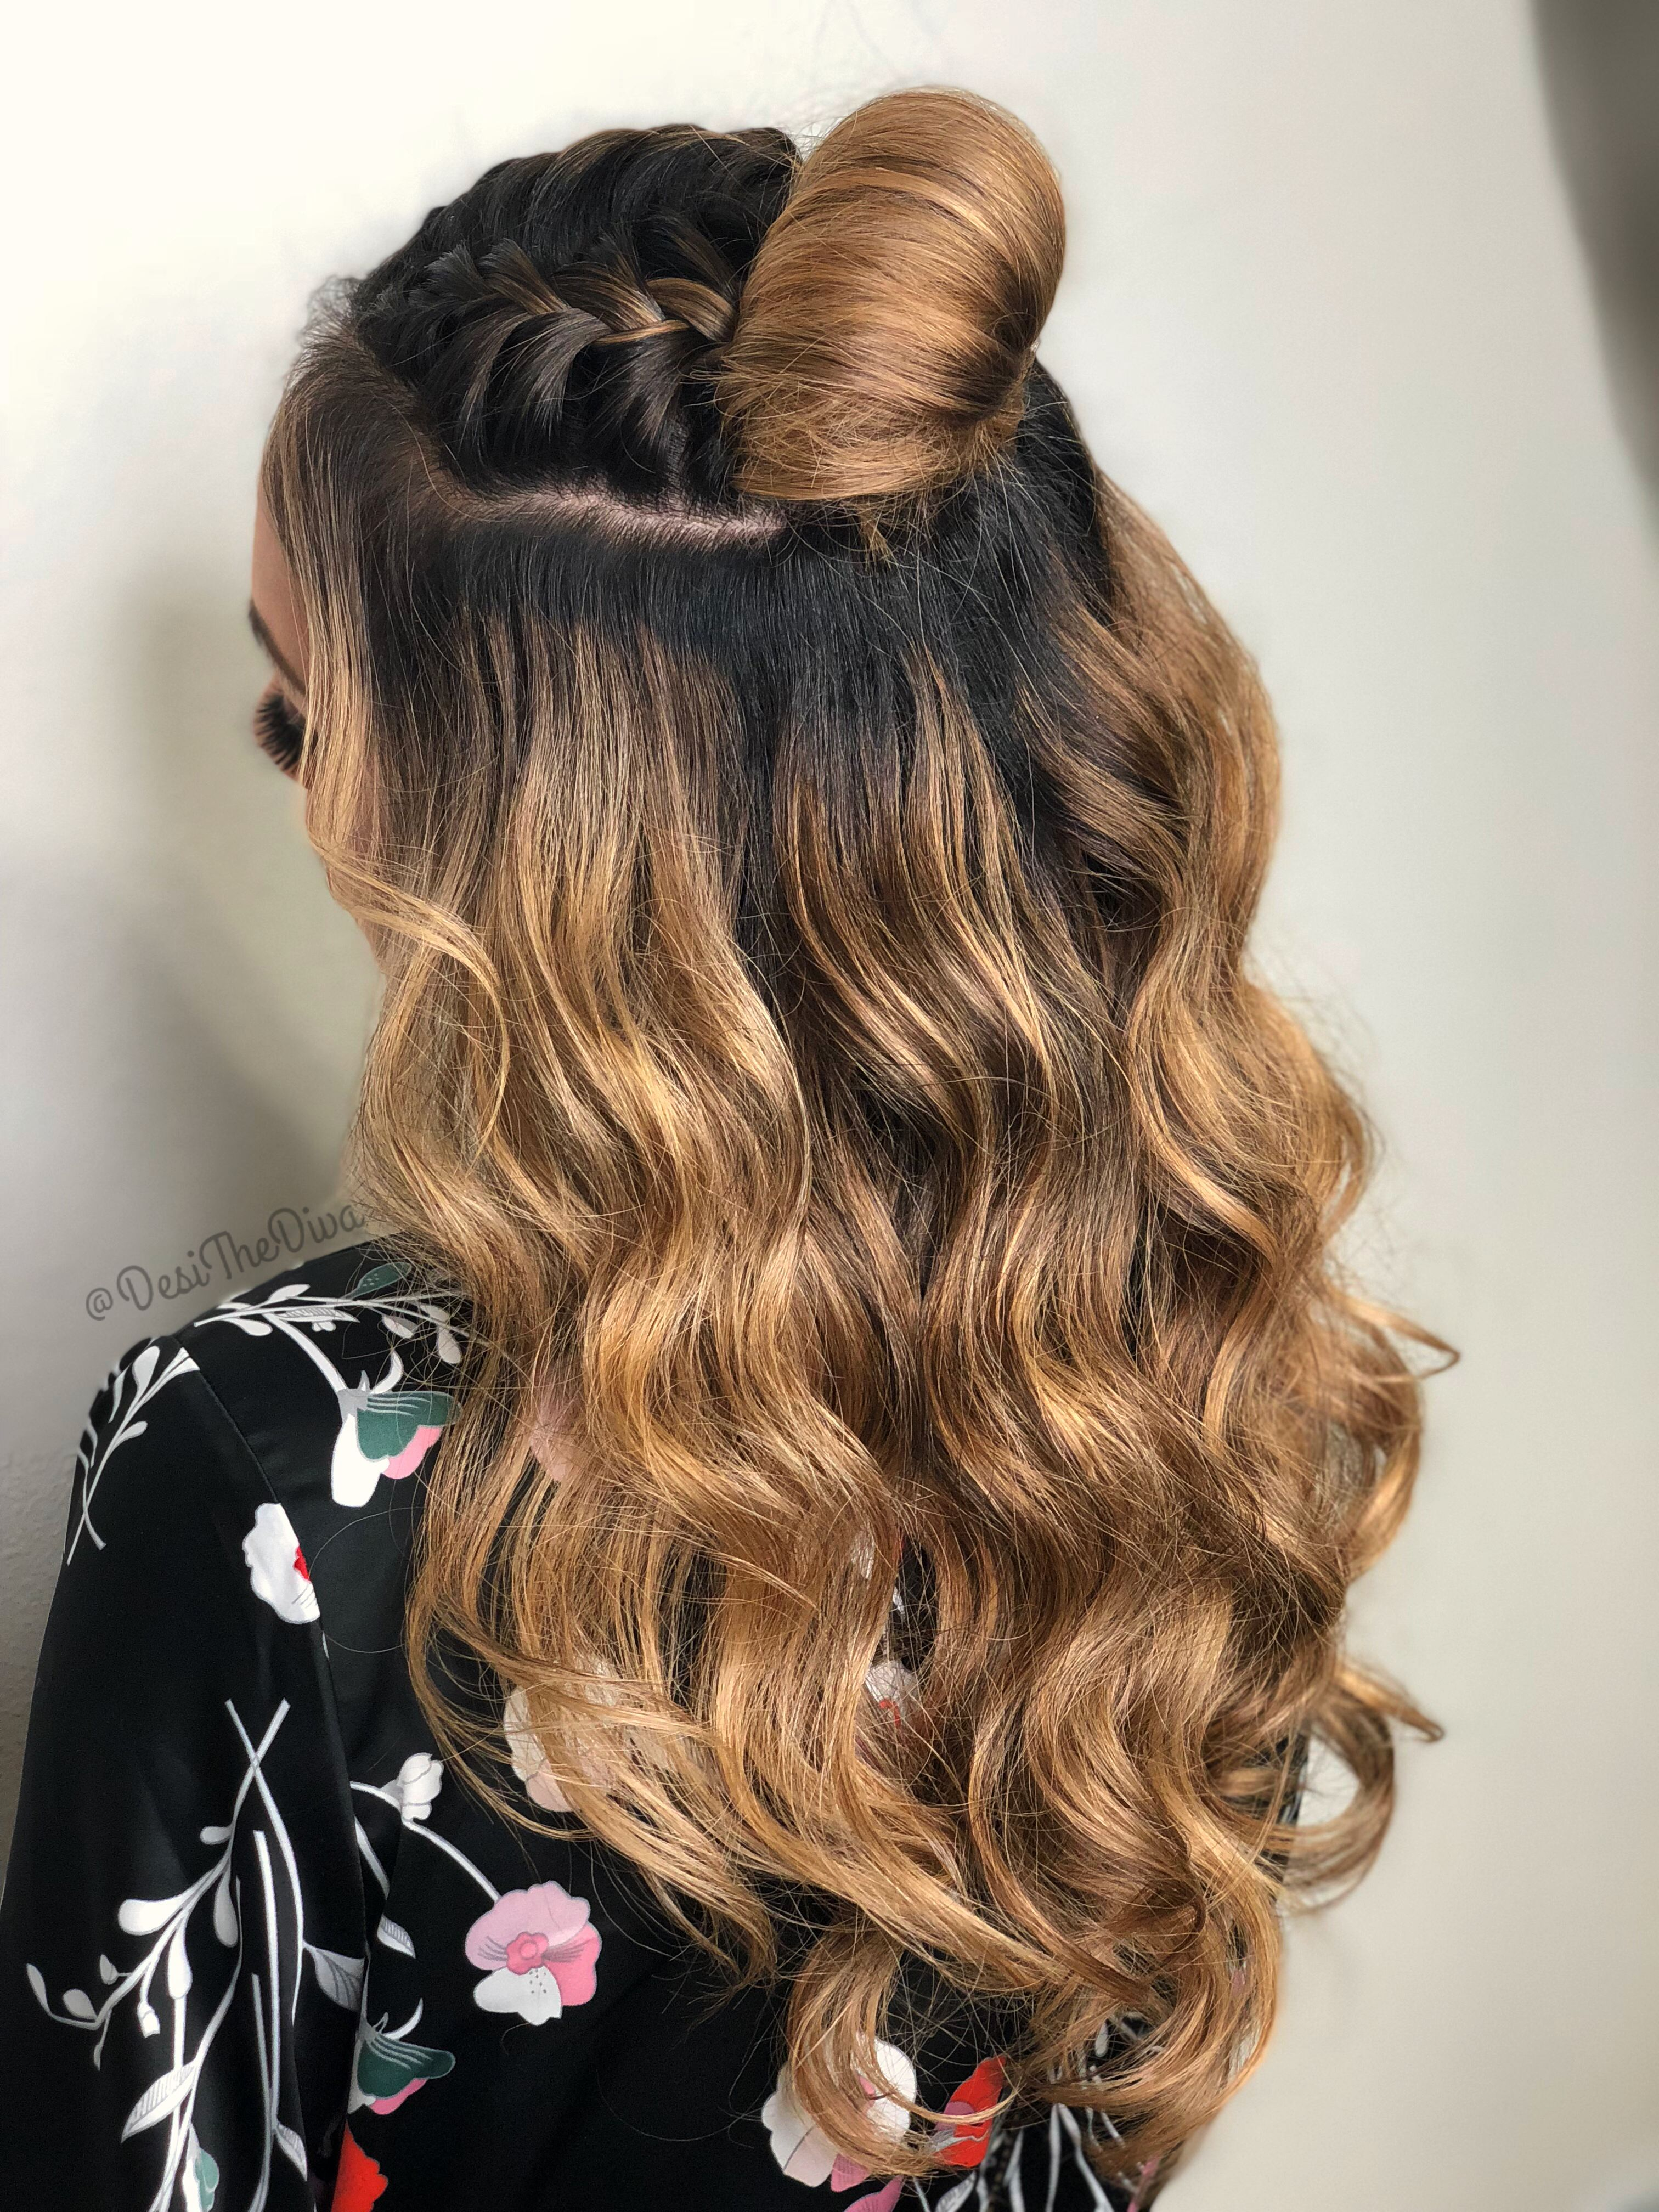 Wavy Top Knot Braided Top Knots Half Up Hair Braided Half Up